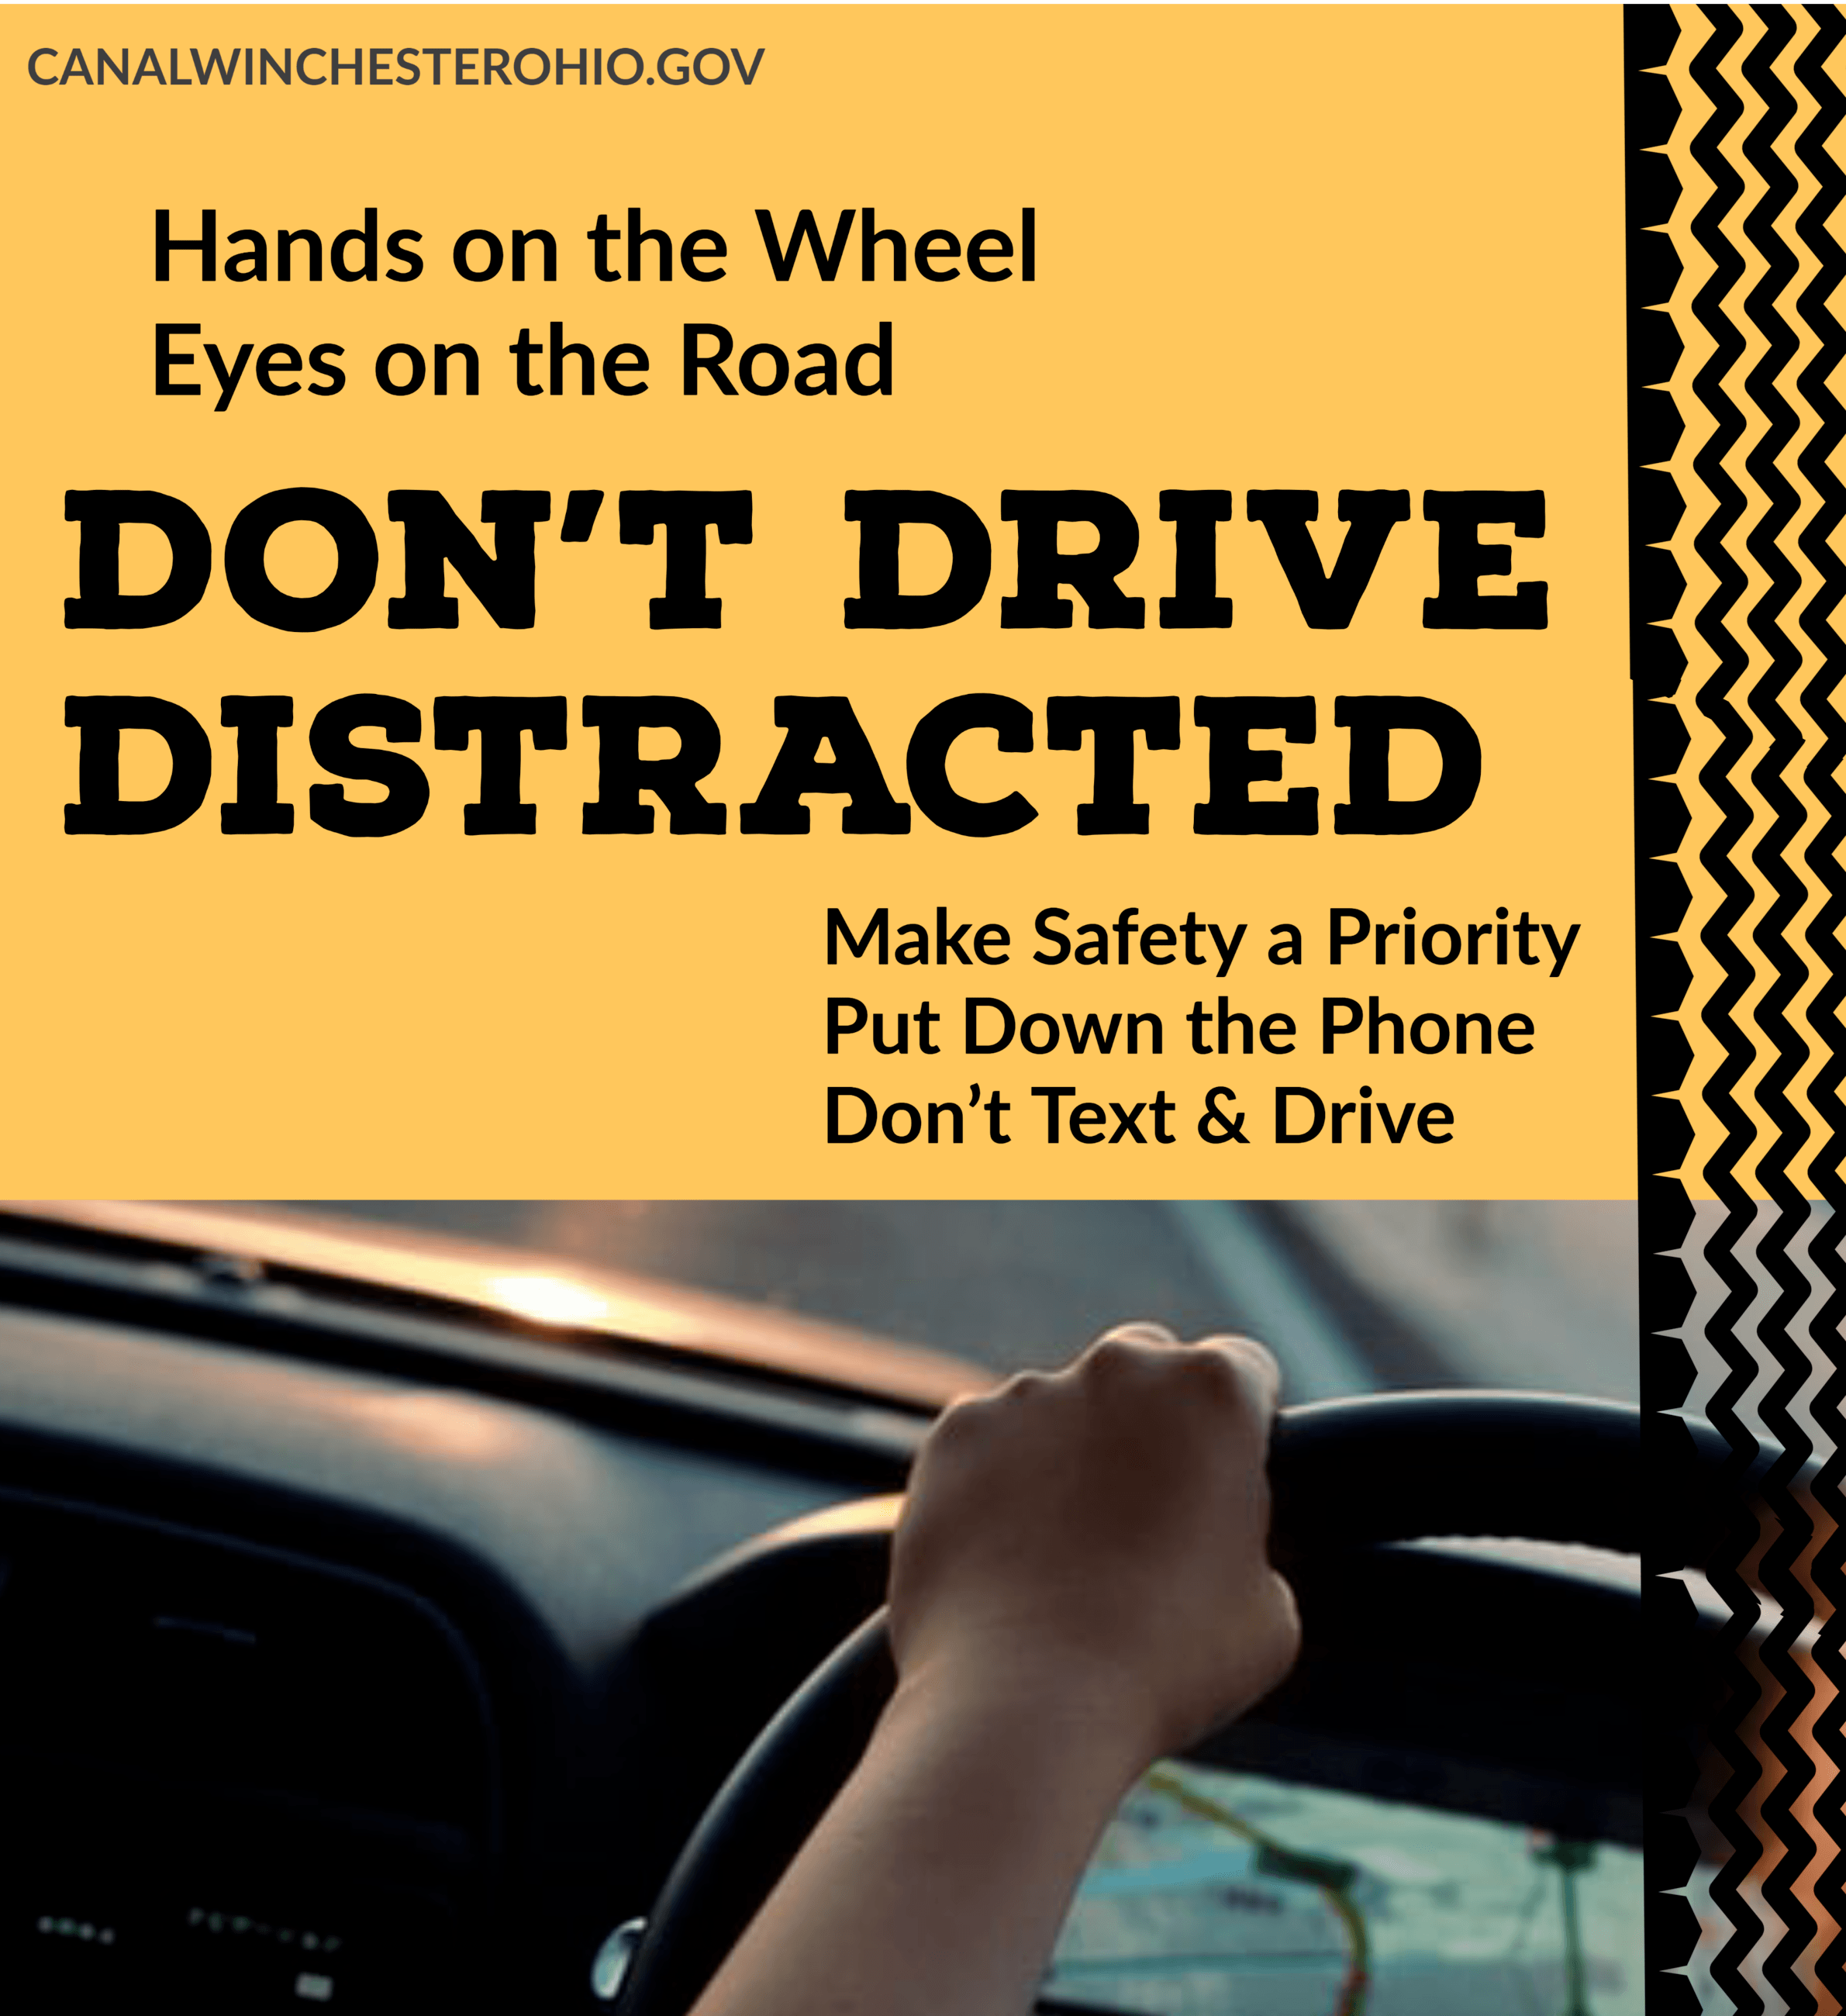 no distracted driving promo image